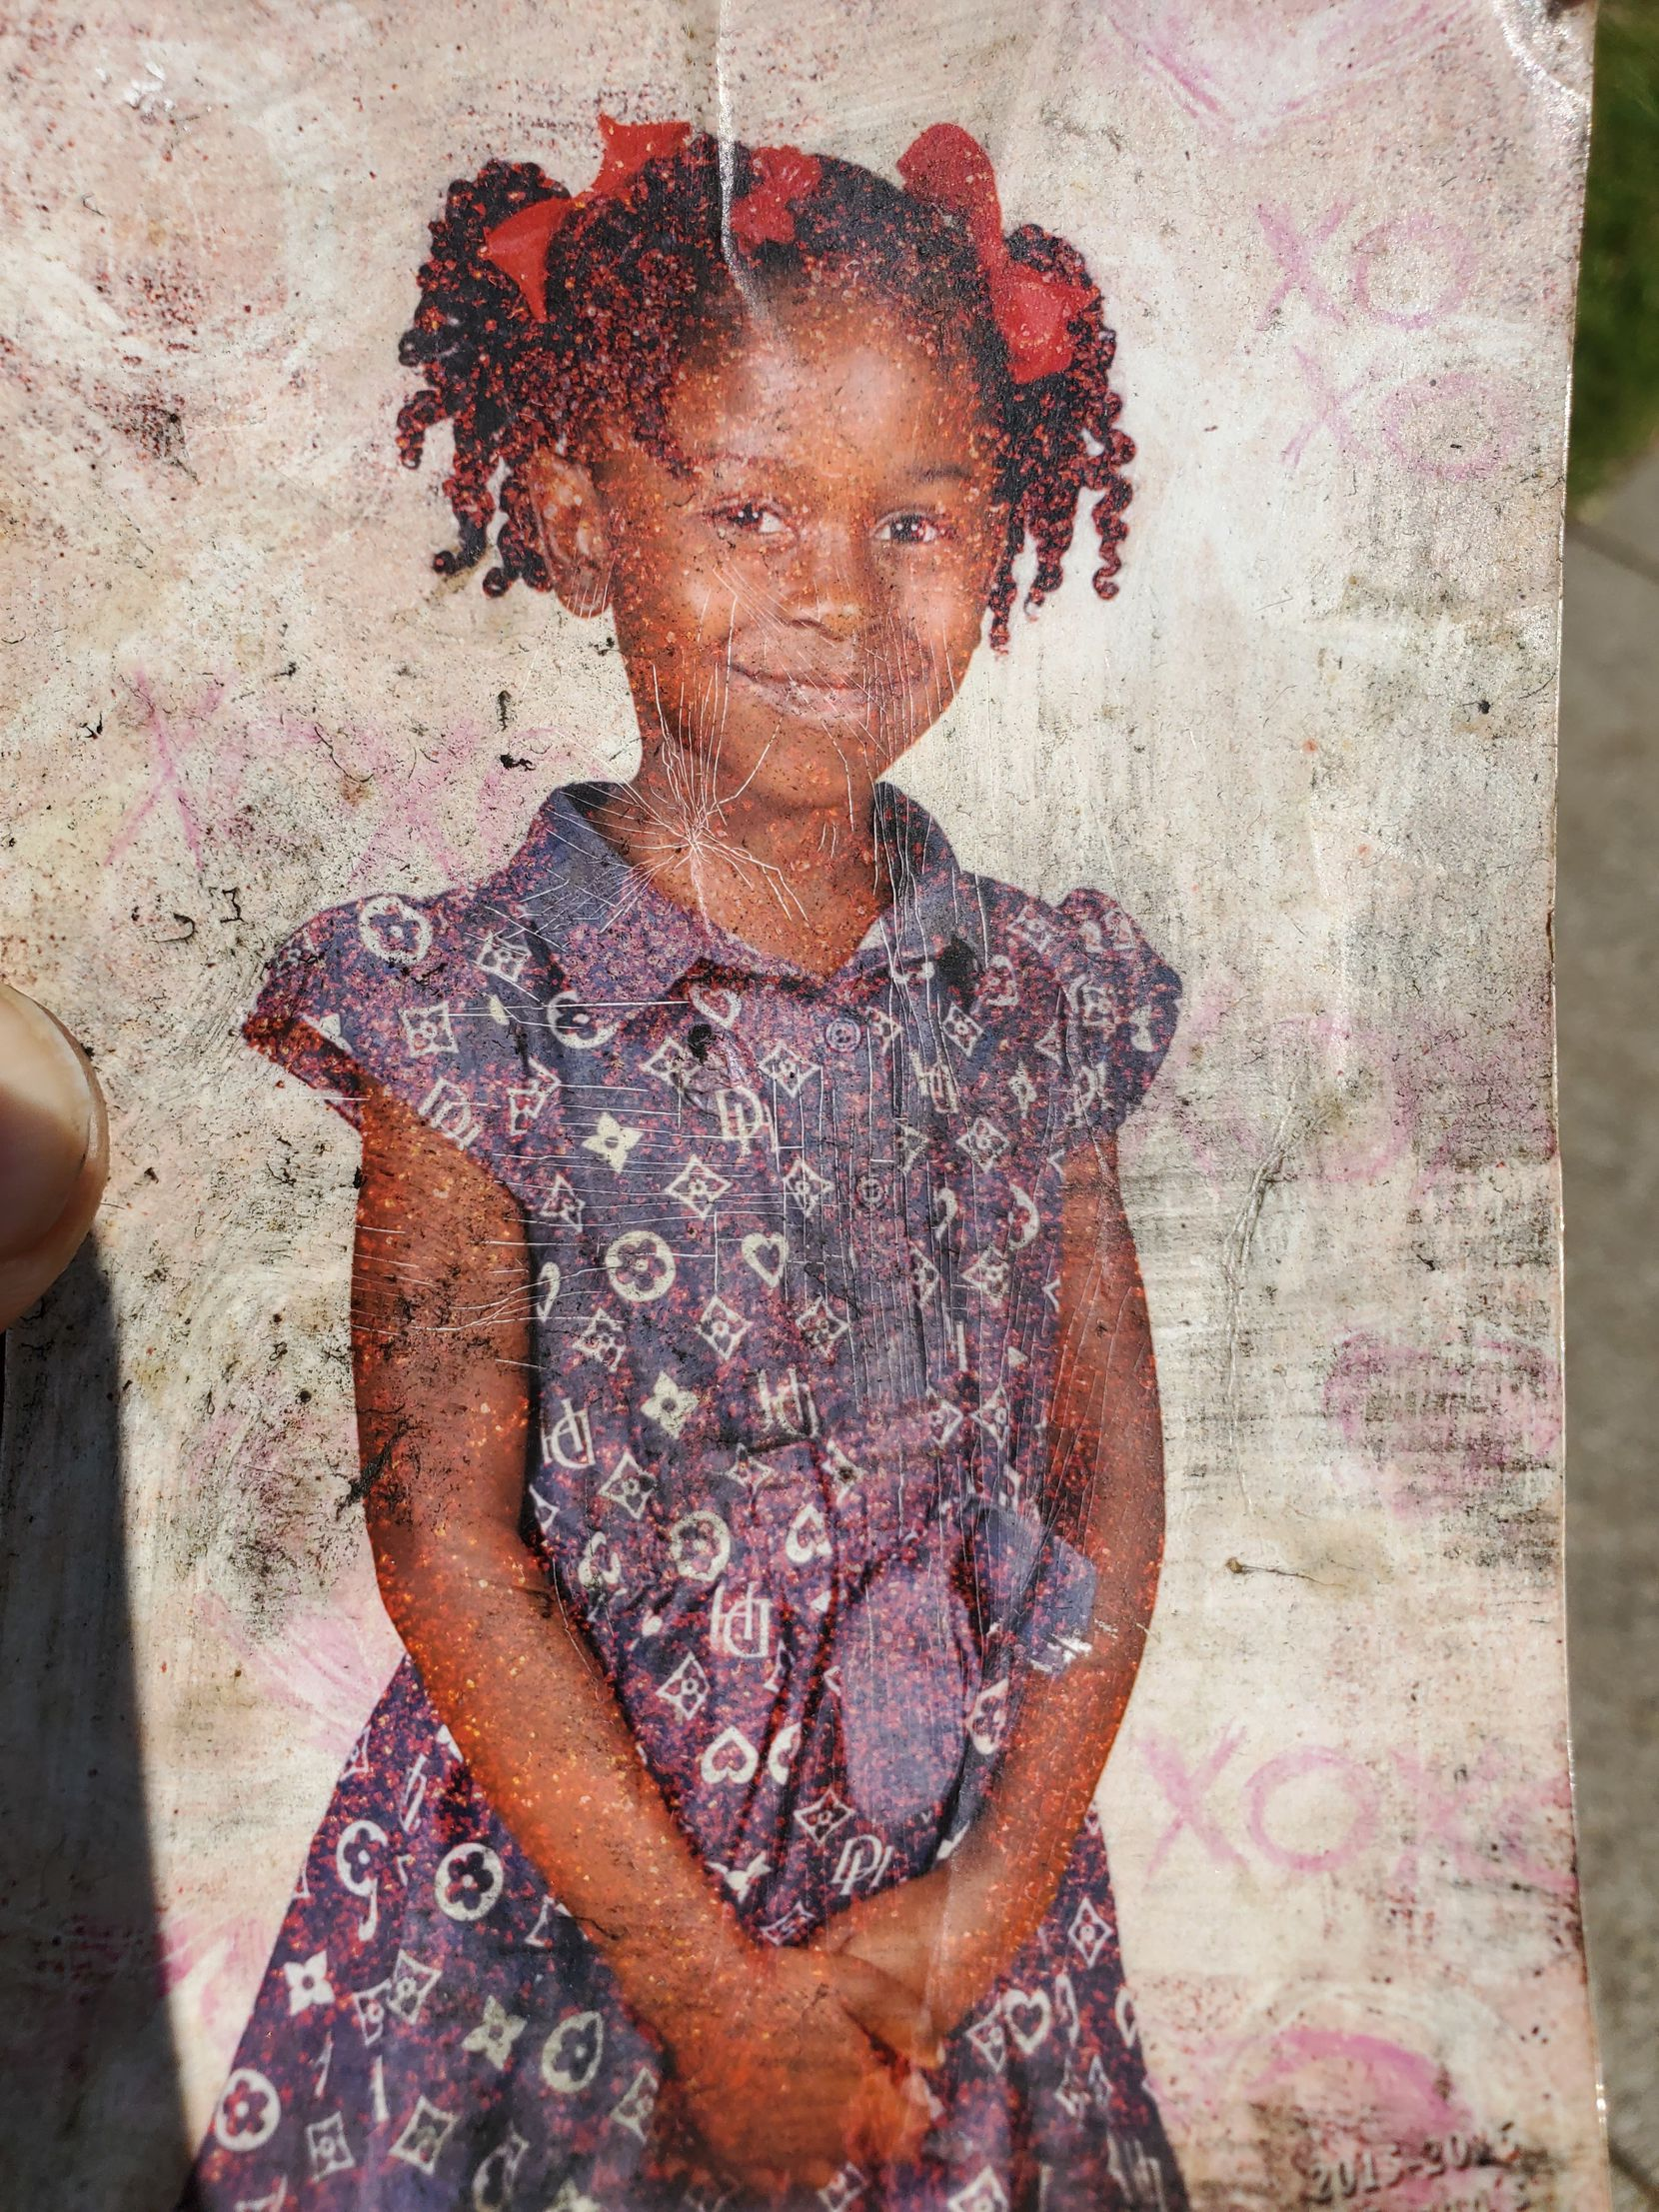 Brandoniya Bennett, the 9-year-old girl killed at Roseland Townhomes